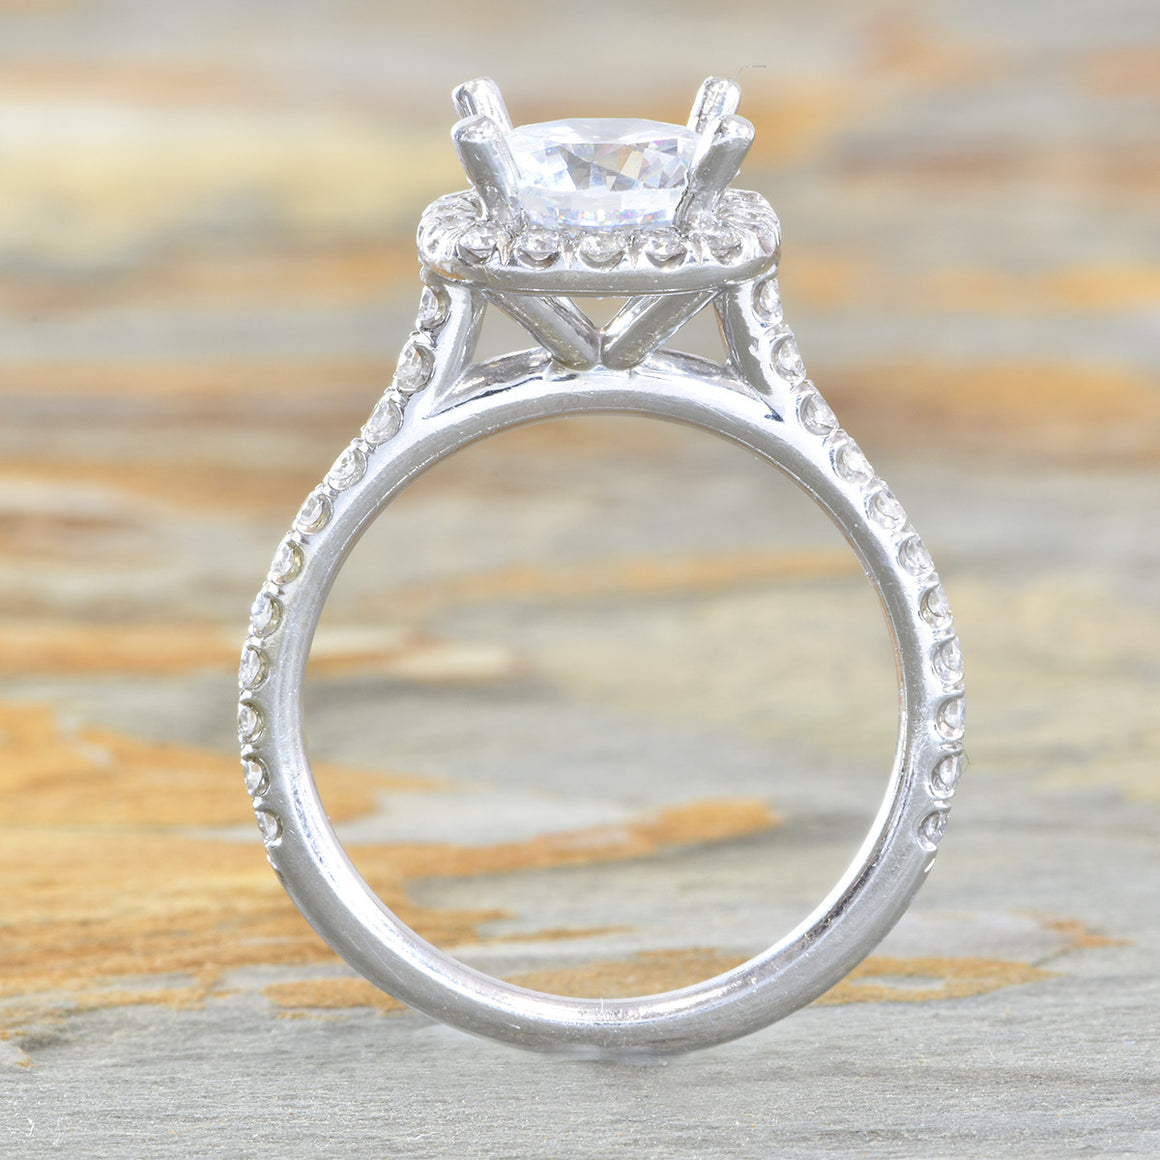 14K White gold pave halo diamond engagement ring